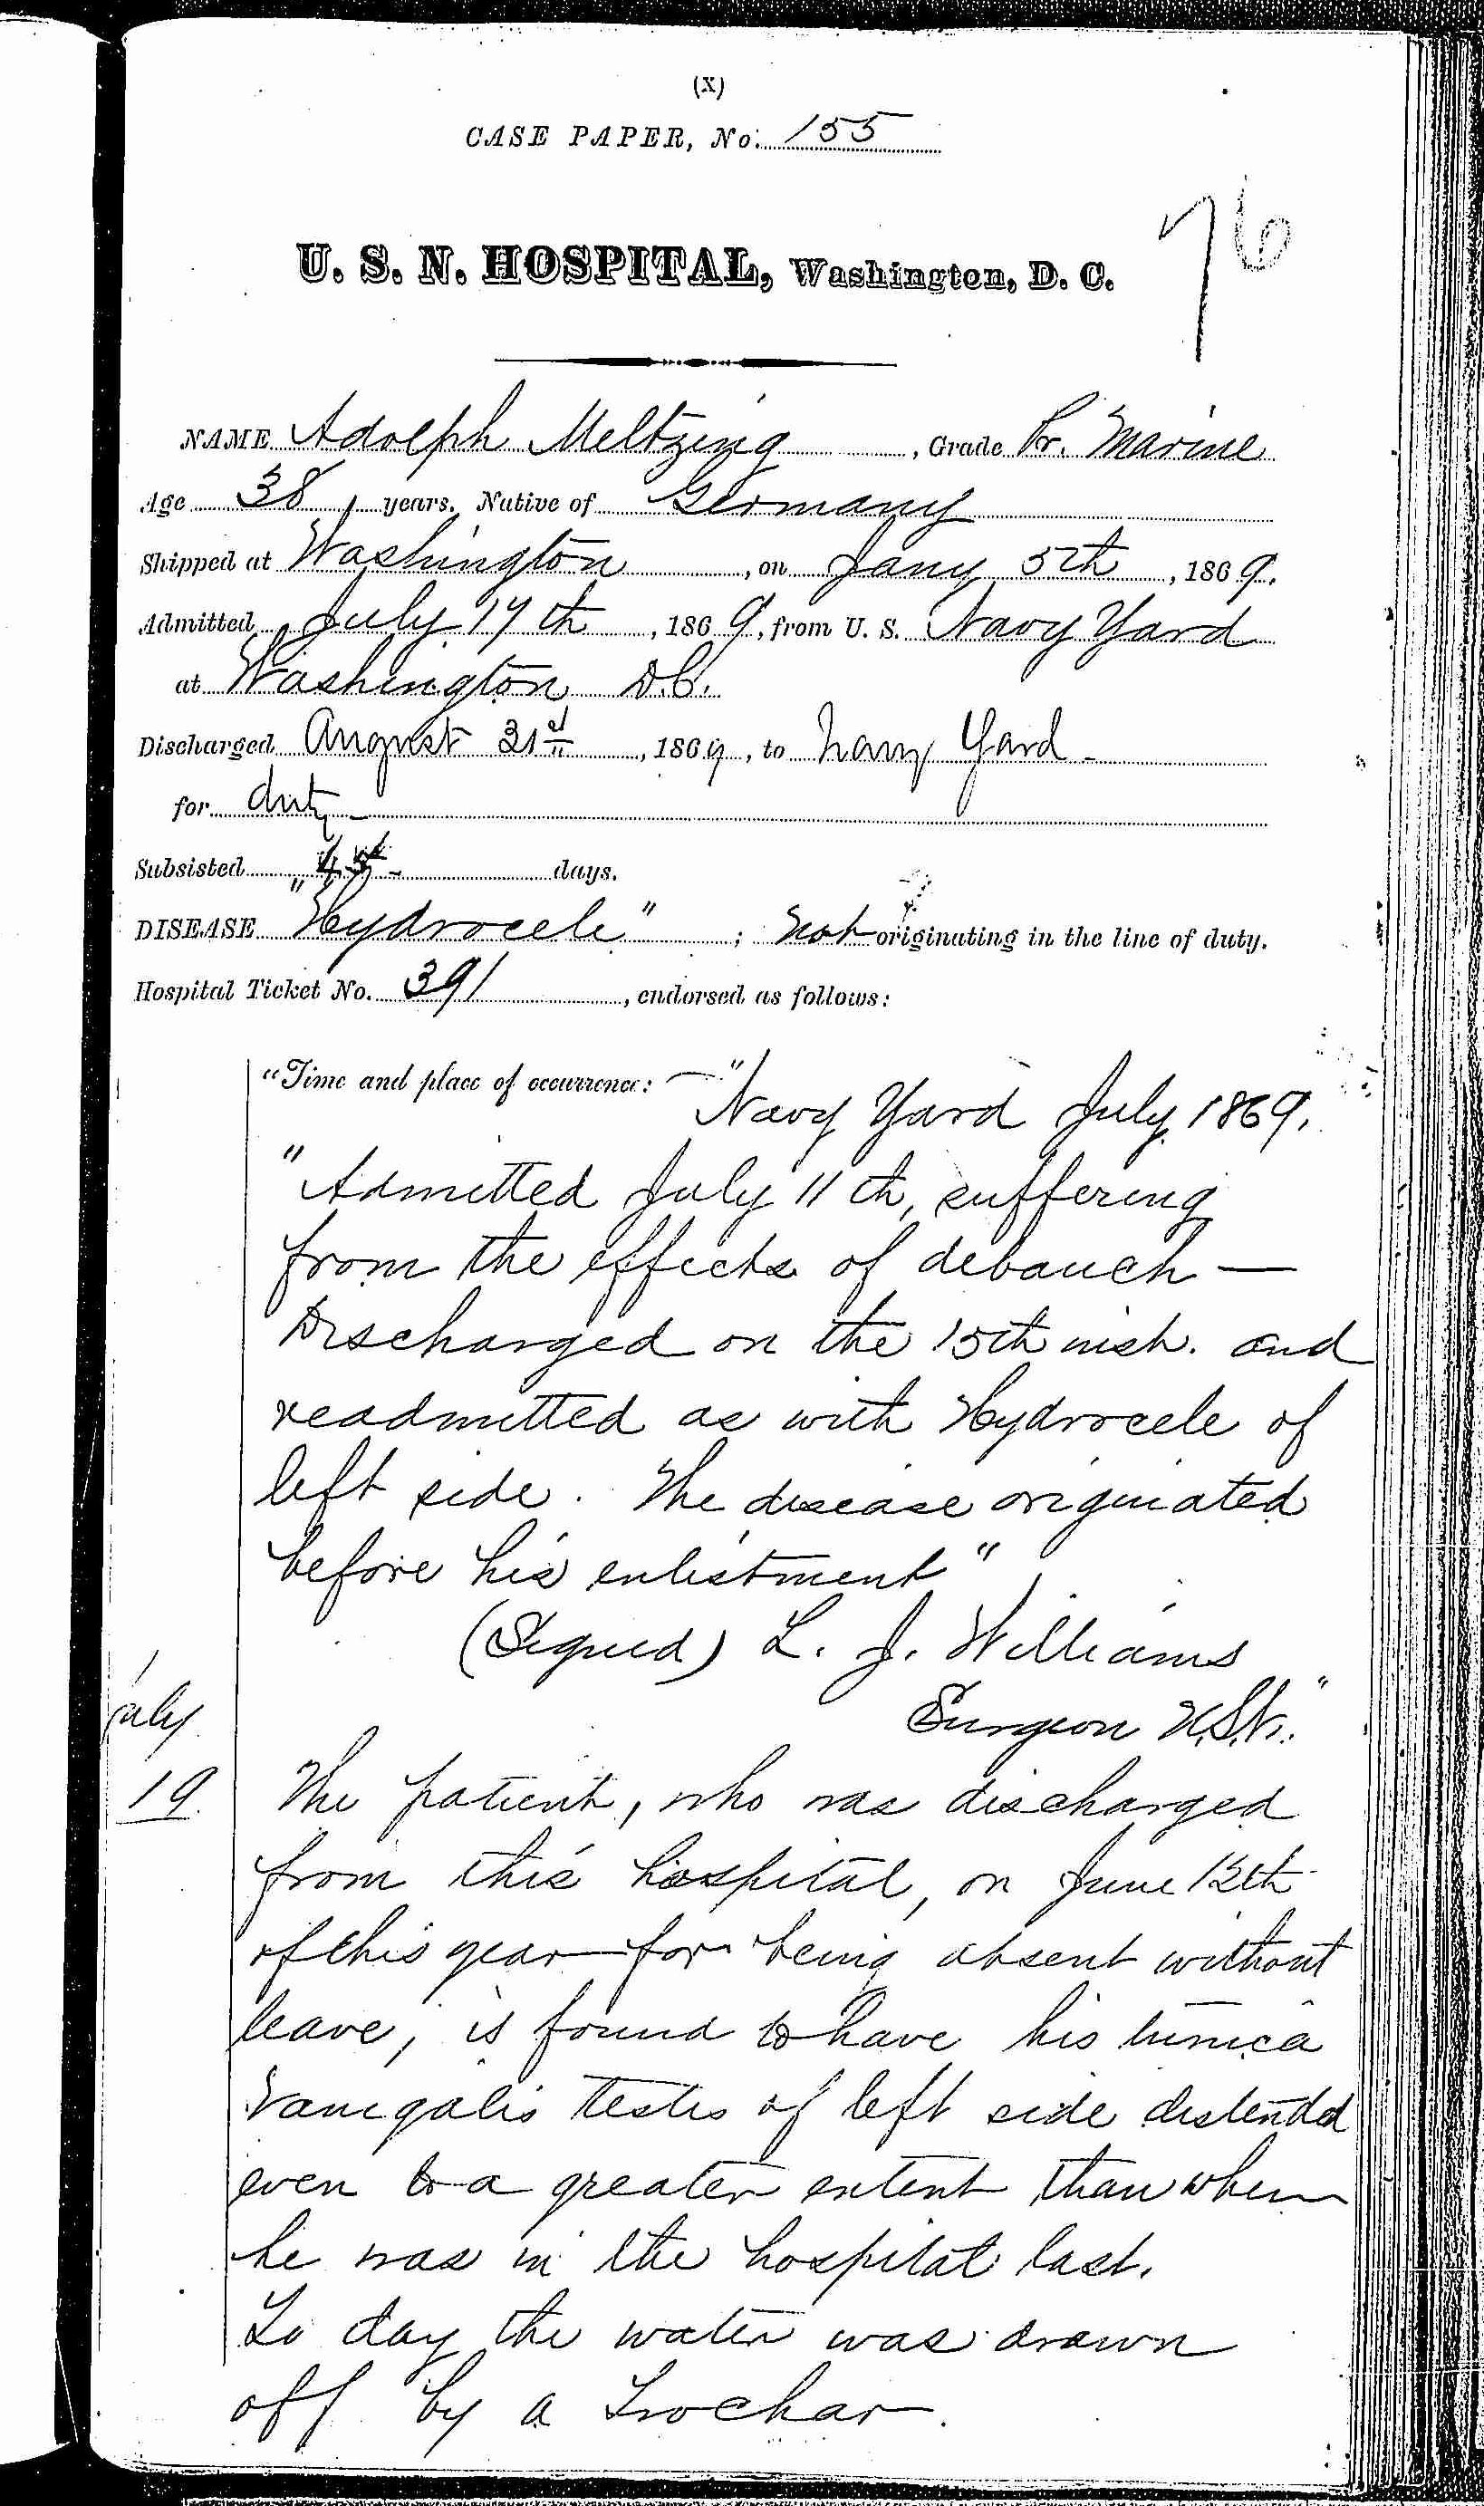 Entry for Adolph Meltzing (second admission page 1 of 4) in the log Hospital Tickets and Case Papers - Naval Hospital - Washington, D.C. - 1868-69